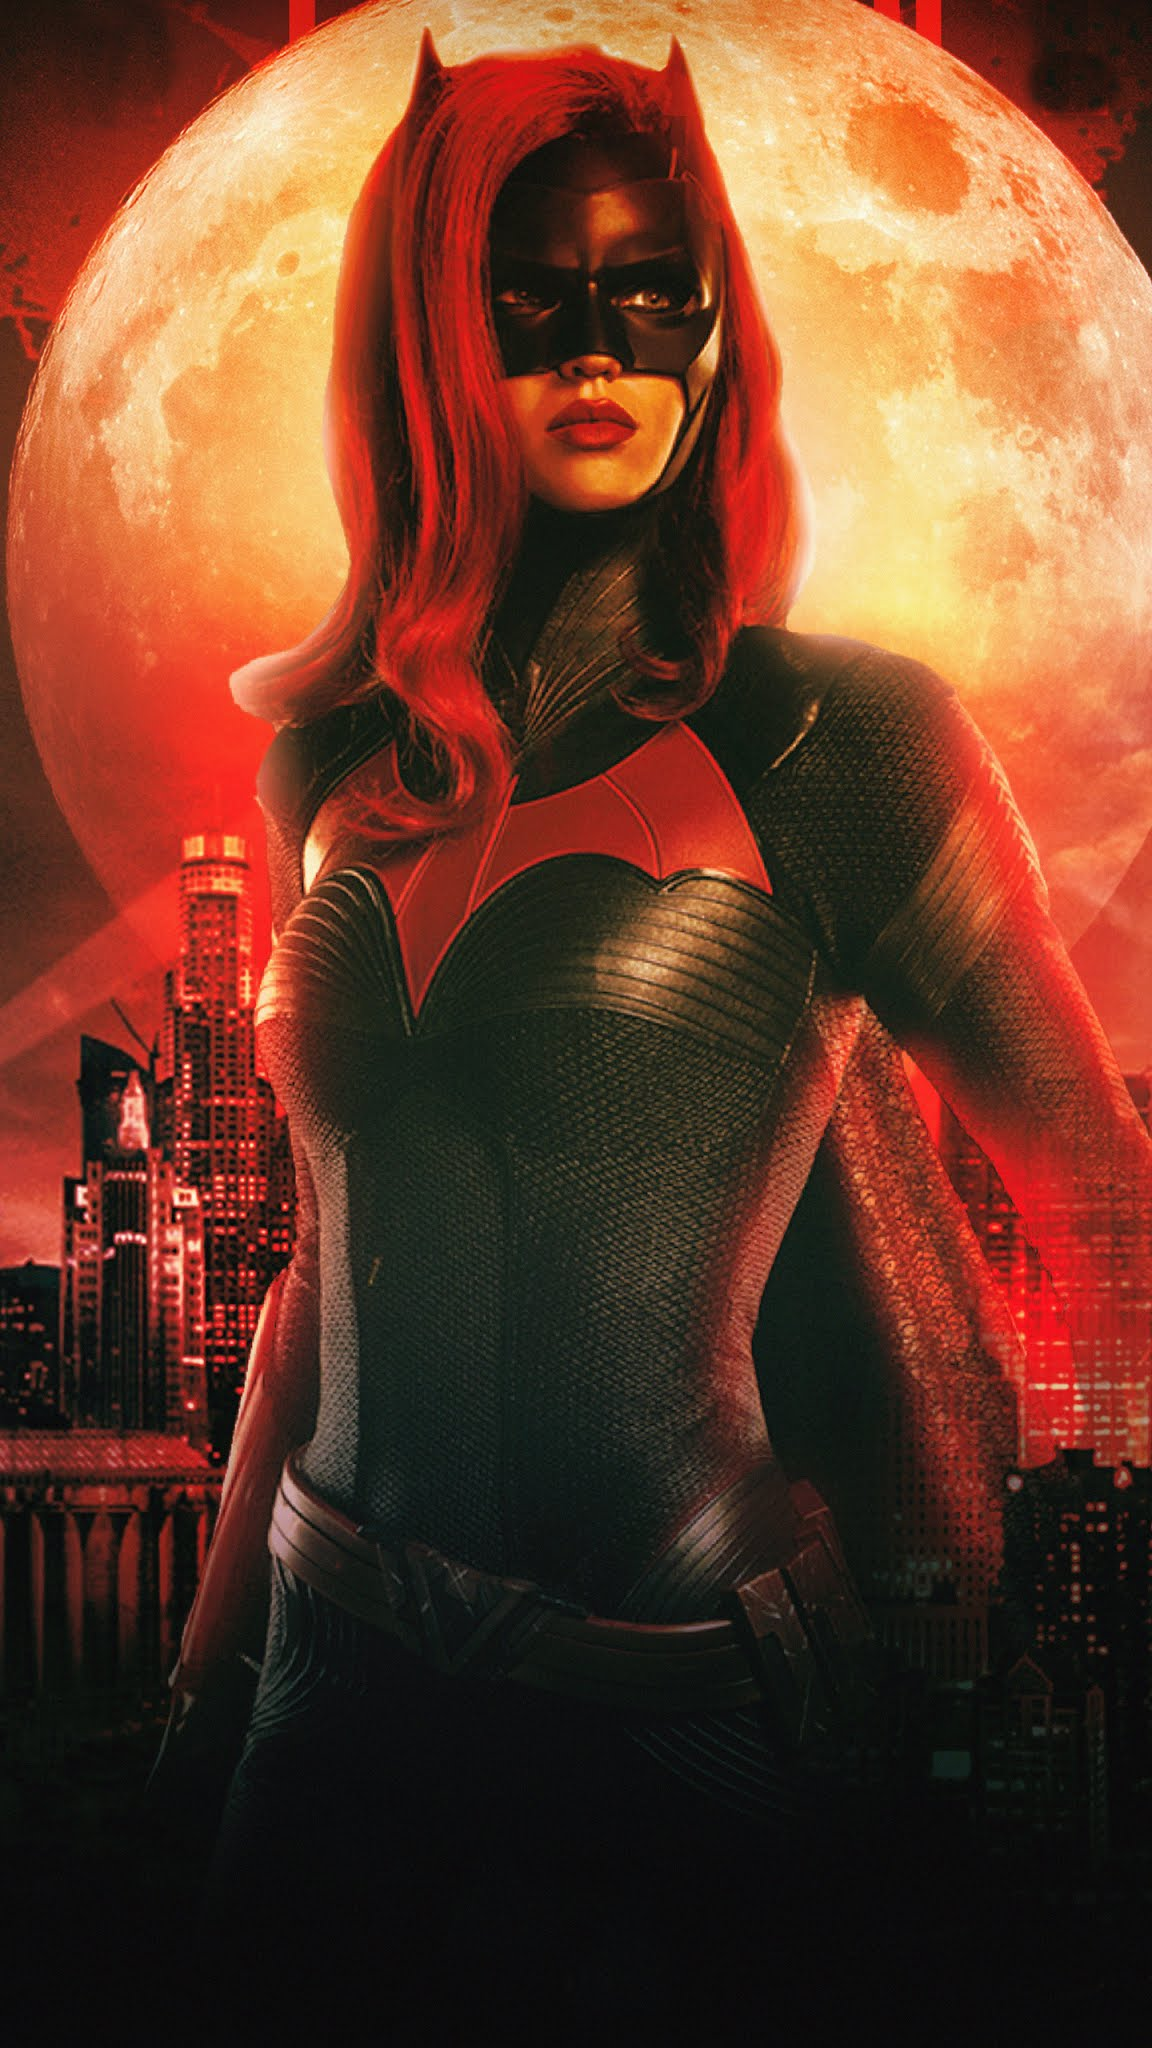 Ruby rose as Batwoman Mobile Wallpaper